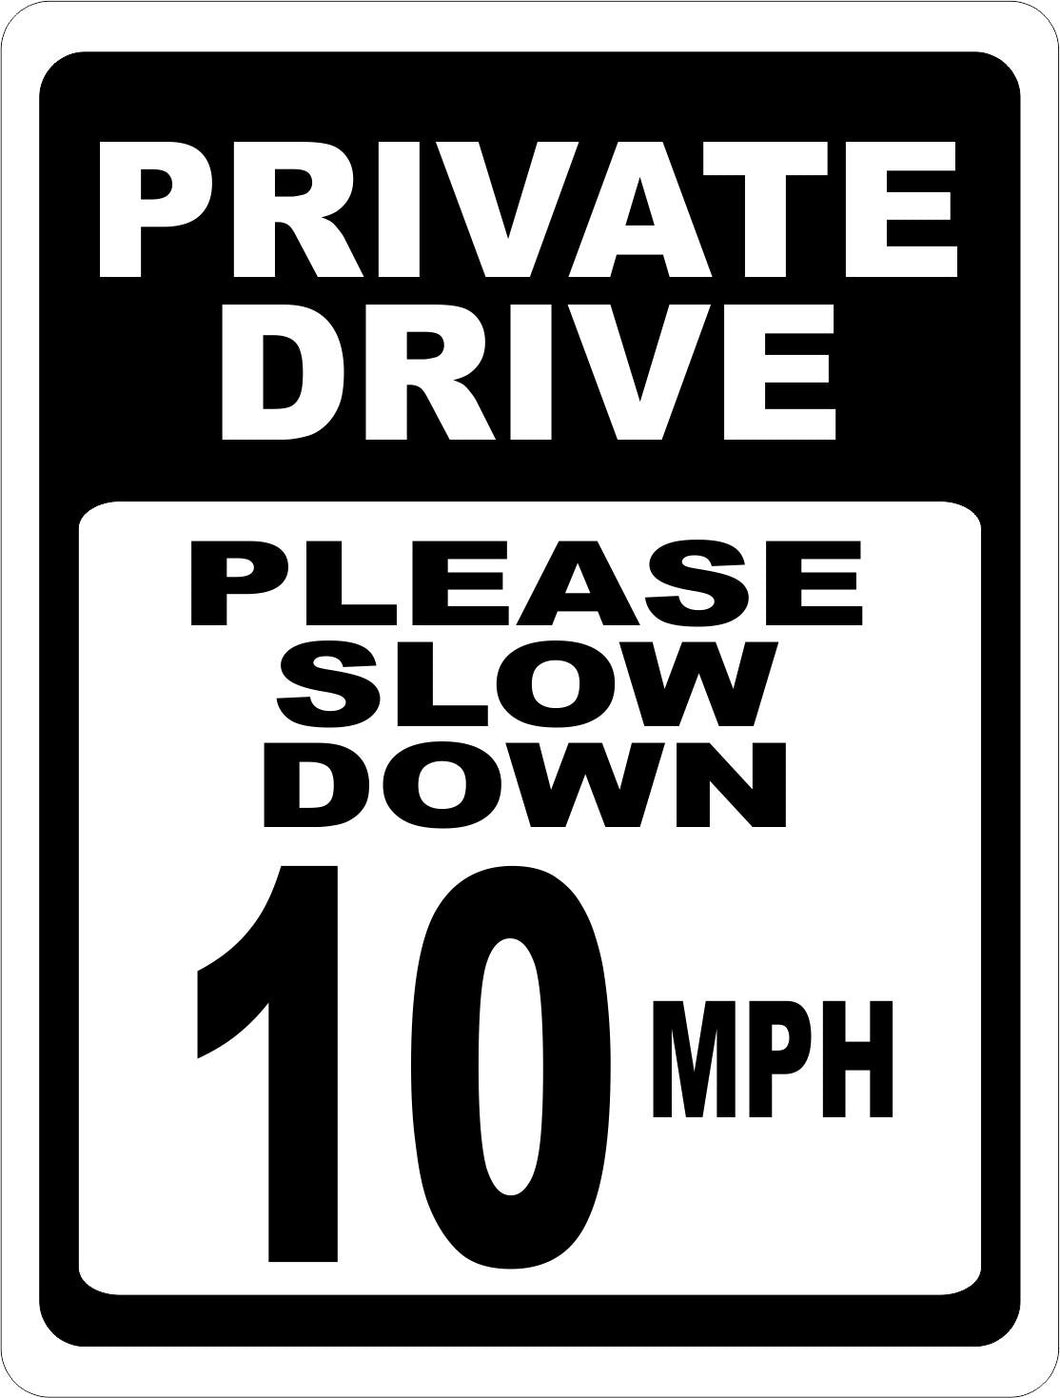 Private Drive Please Slow Down 10 MPH Sign - Signs & Decals by SalaGraphics